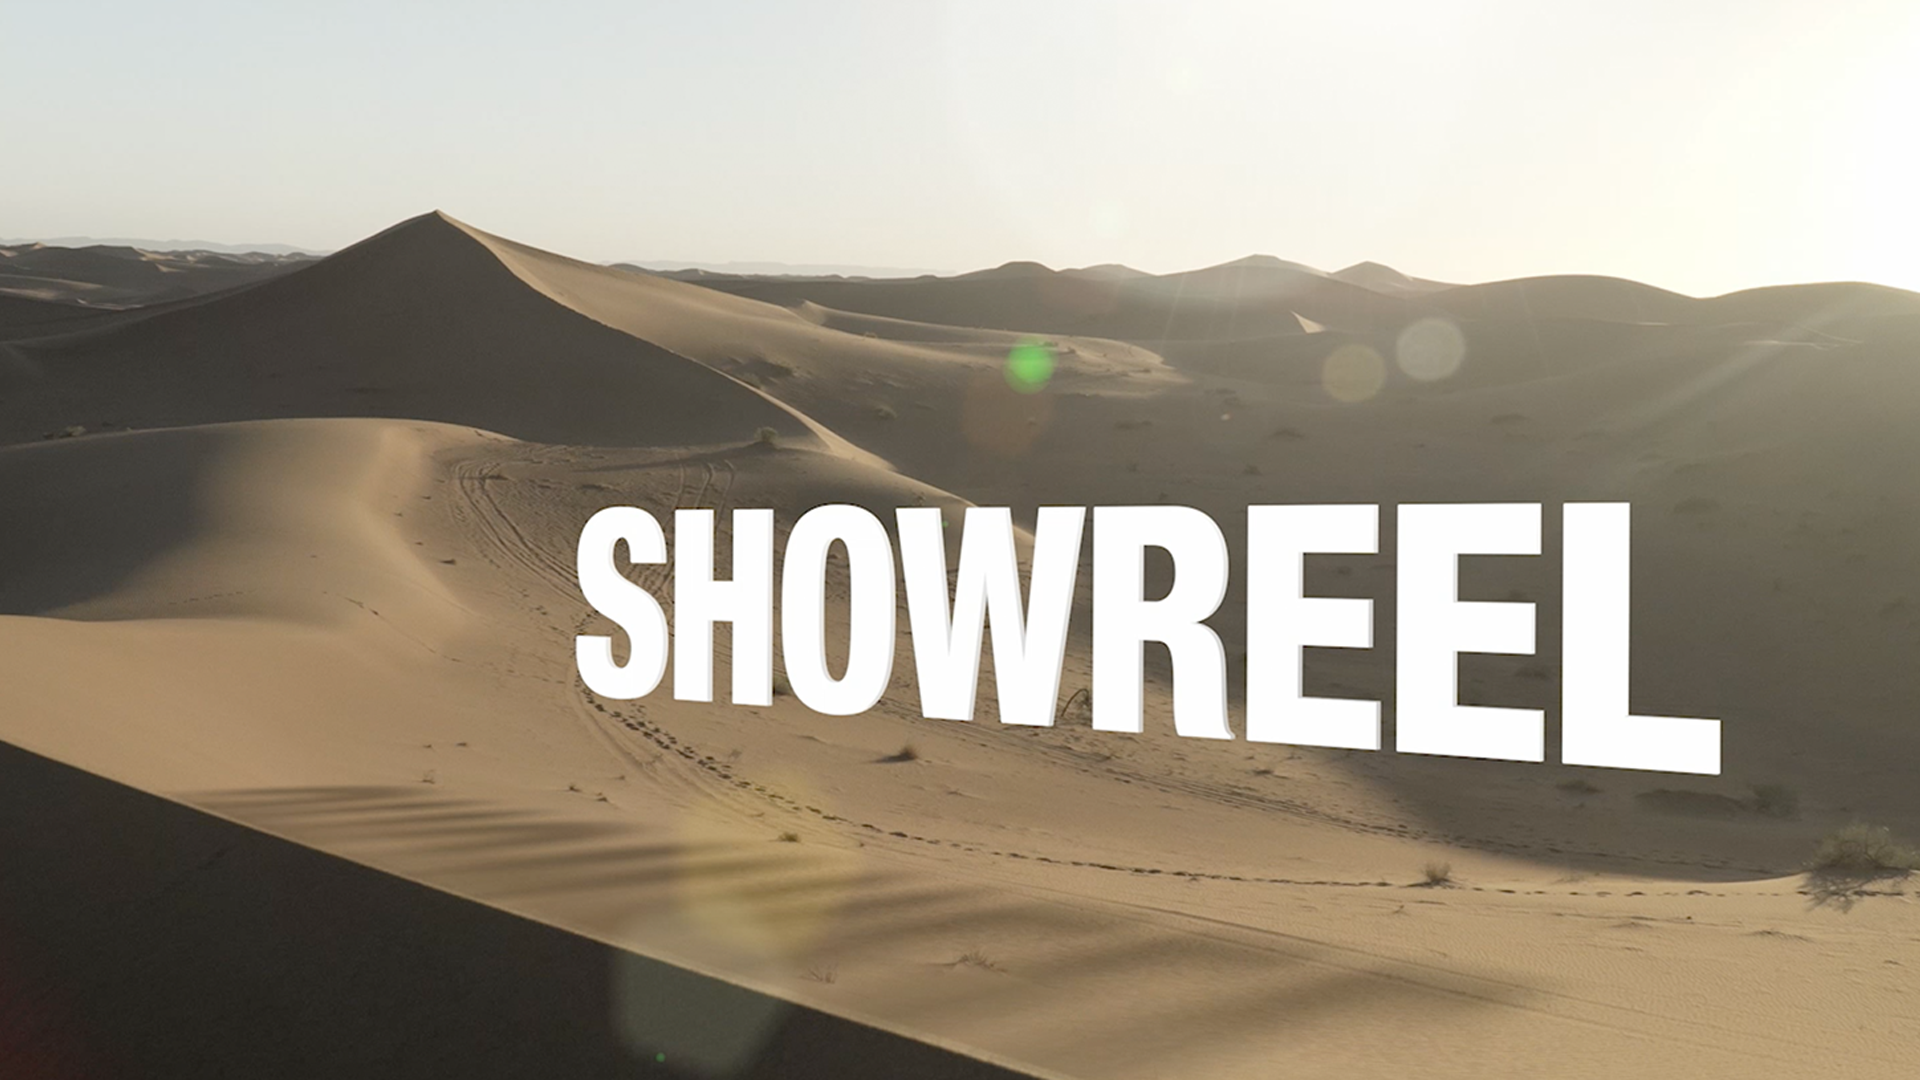 Showreel written out digitally with Moroccan dessert in the background